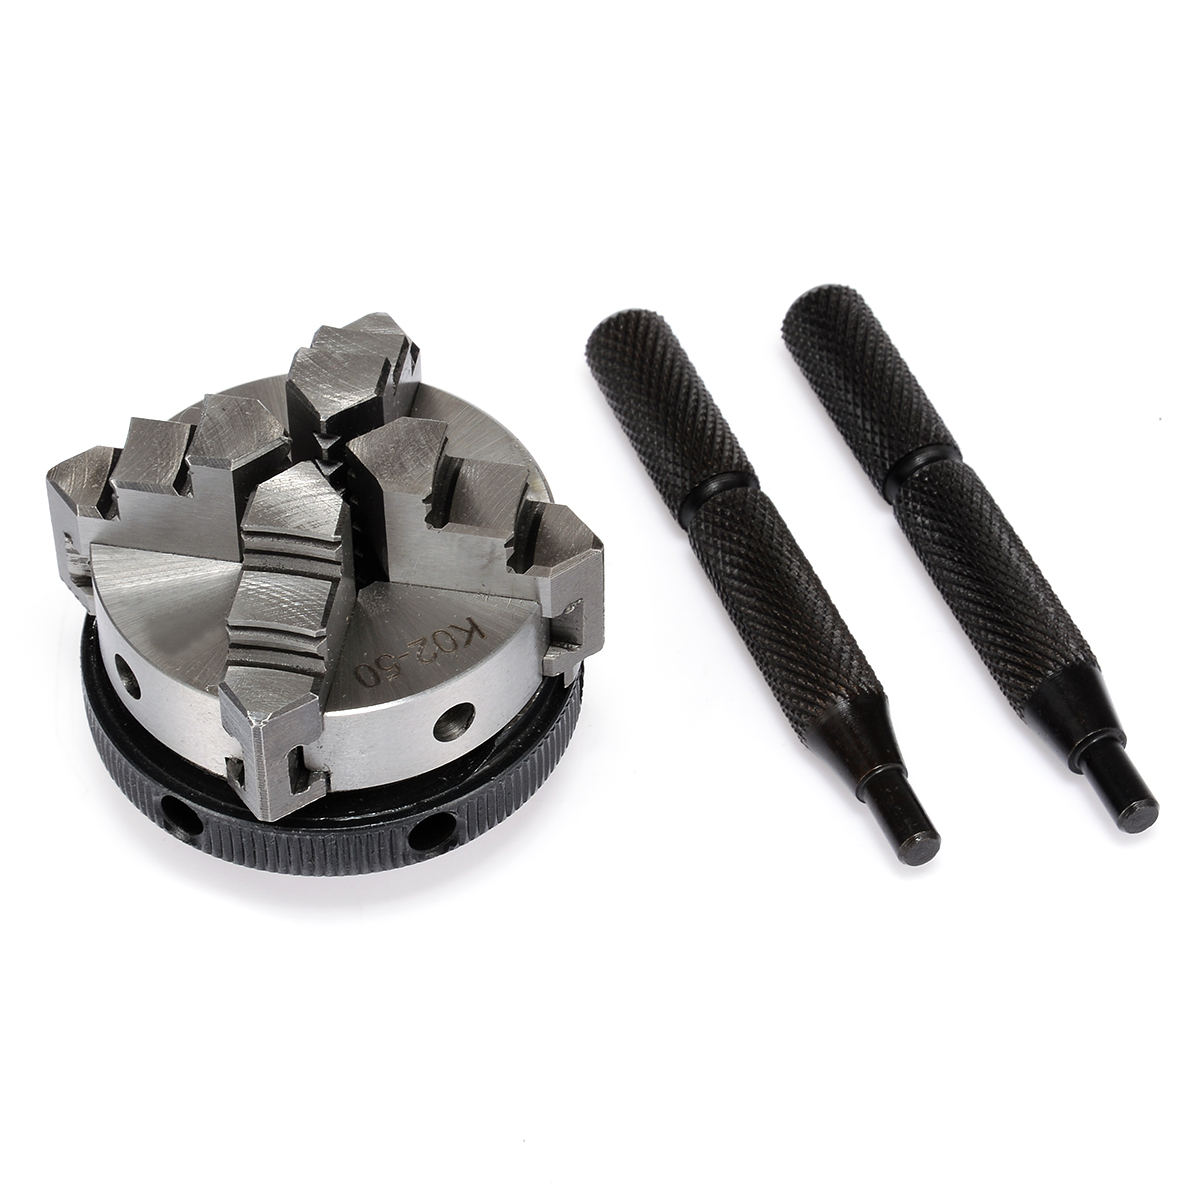 Mini K02-50 4 Jaw Lathe Chuck 2 inch M14 Self-Centering Thread Mount with 2pcs Lock Rod with High Hardness цены